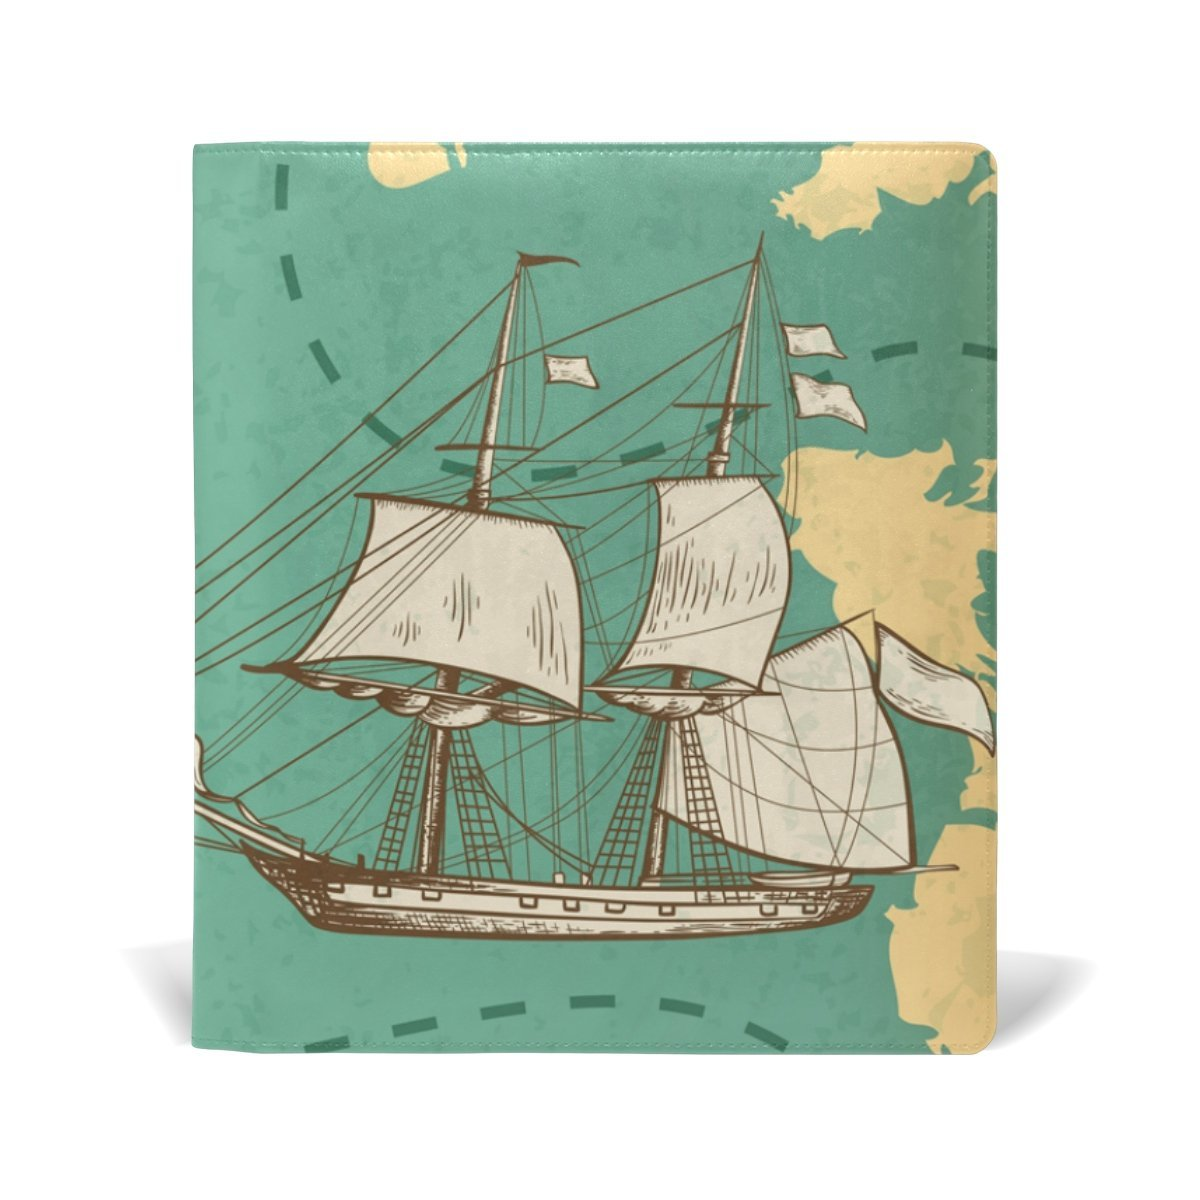 ColourLife Leather Book Covers for Textbooks Hardcovers Ancient Ocean History School Books Protector 9 x 11 Inches